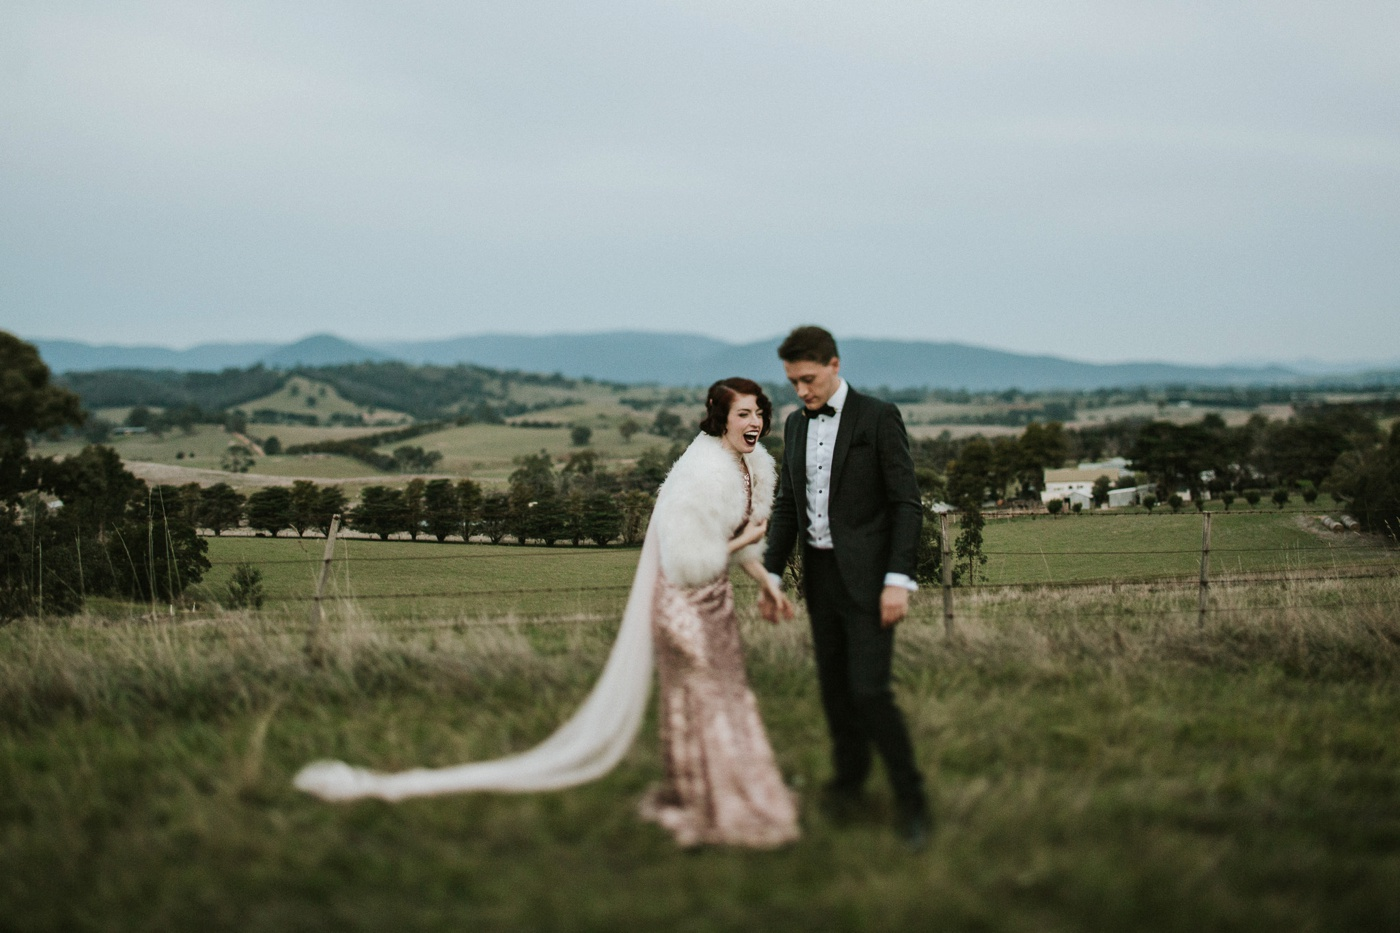 Emma&Morgan_Melbourne-Vintage-Elegant-Fun-Quirky-Yarra-Valley-Vineyard-Wedding_Melbourne-Wedding-Photography-79